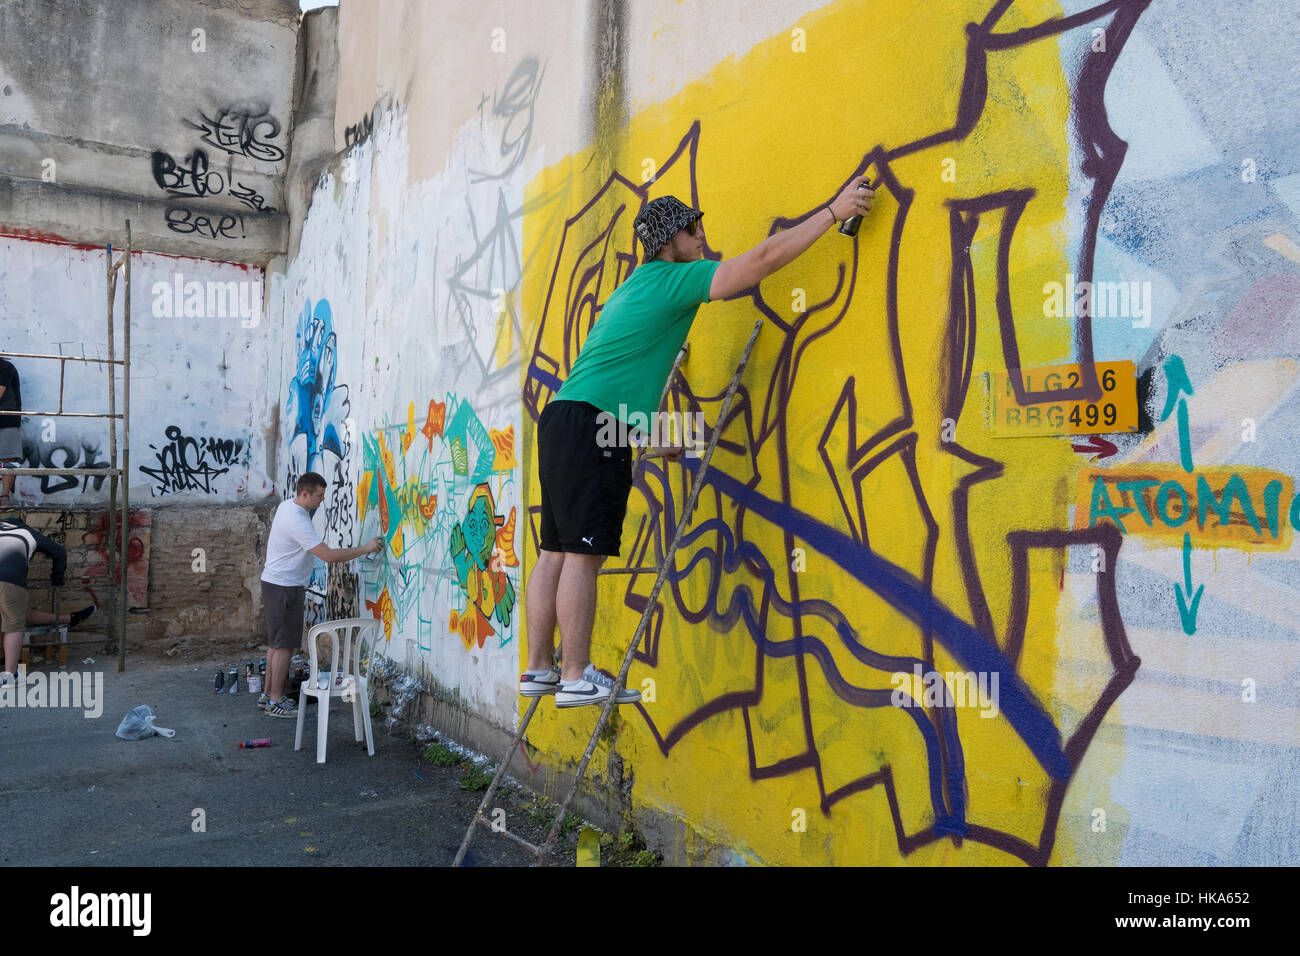 A man painting graffiti on the wall, Limassol, Cyprus Stock Photo ...